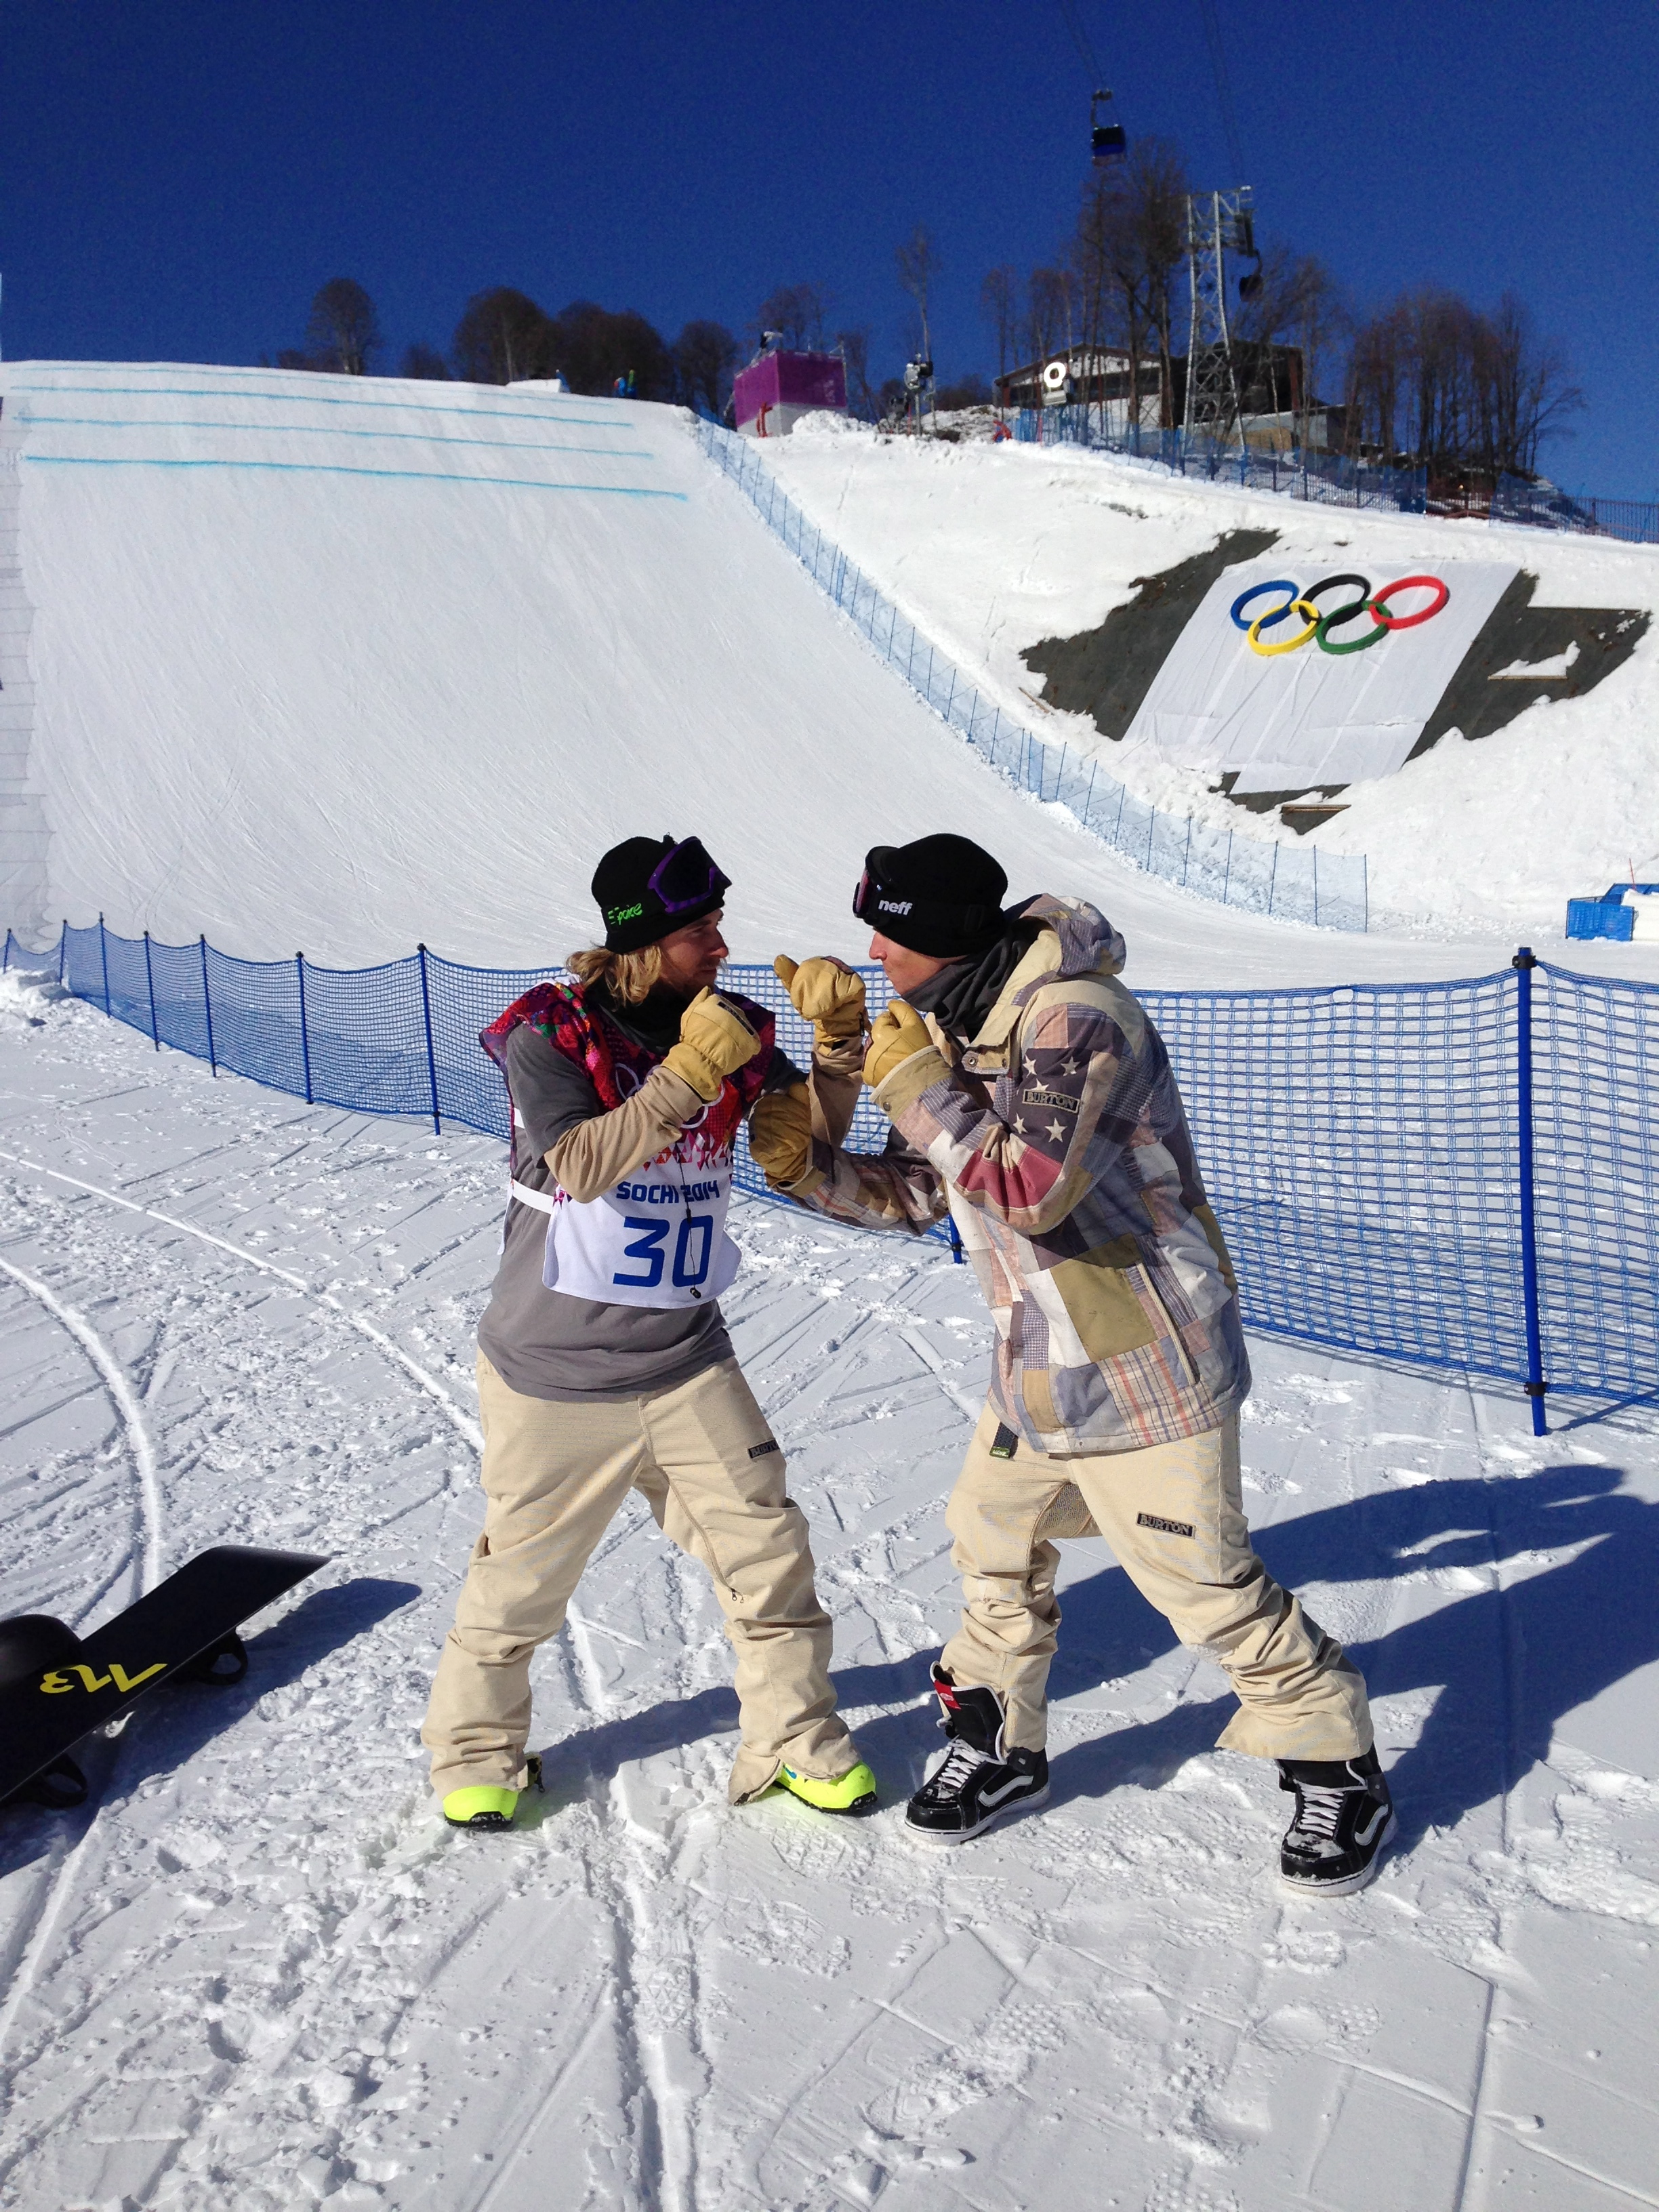 ''Chas took me under his wing when I was 16 and really helped me with the ups and downs of competing. He also taught me tons about eating healthy and training during the offseason. Through the years he has been a great mentor and has definitely made a positive impact on my career''  - Sage Kotsenburg